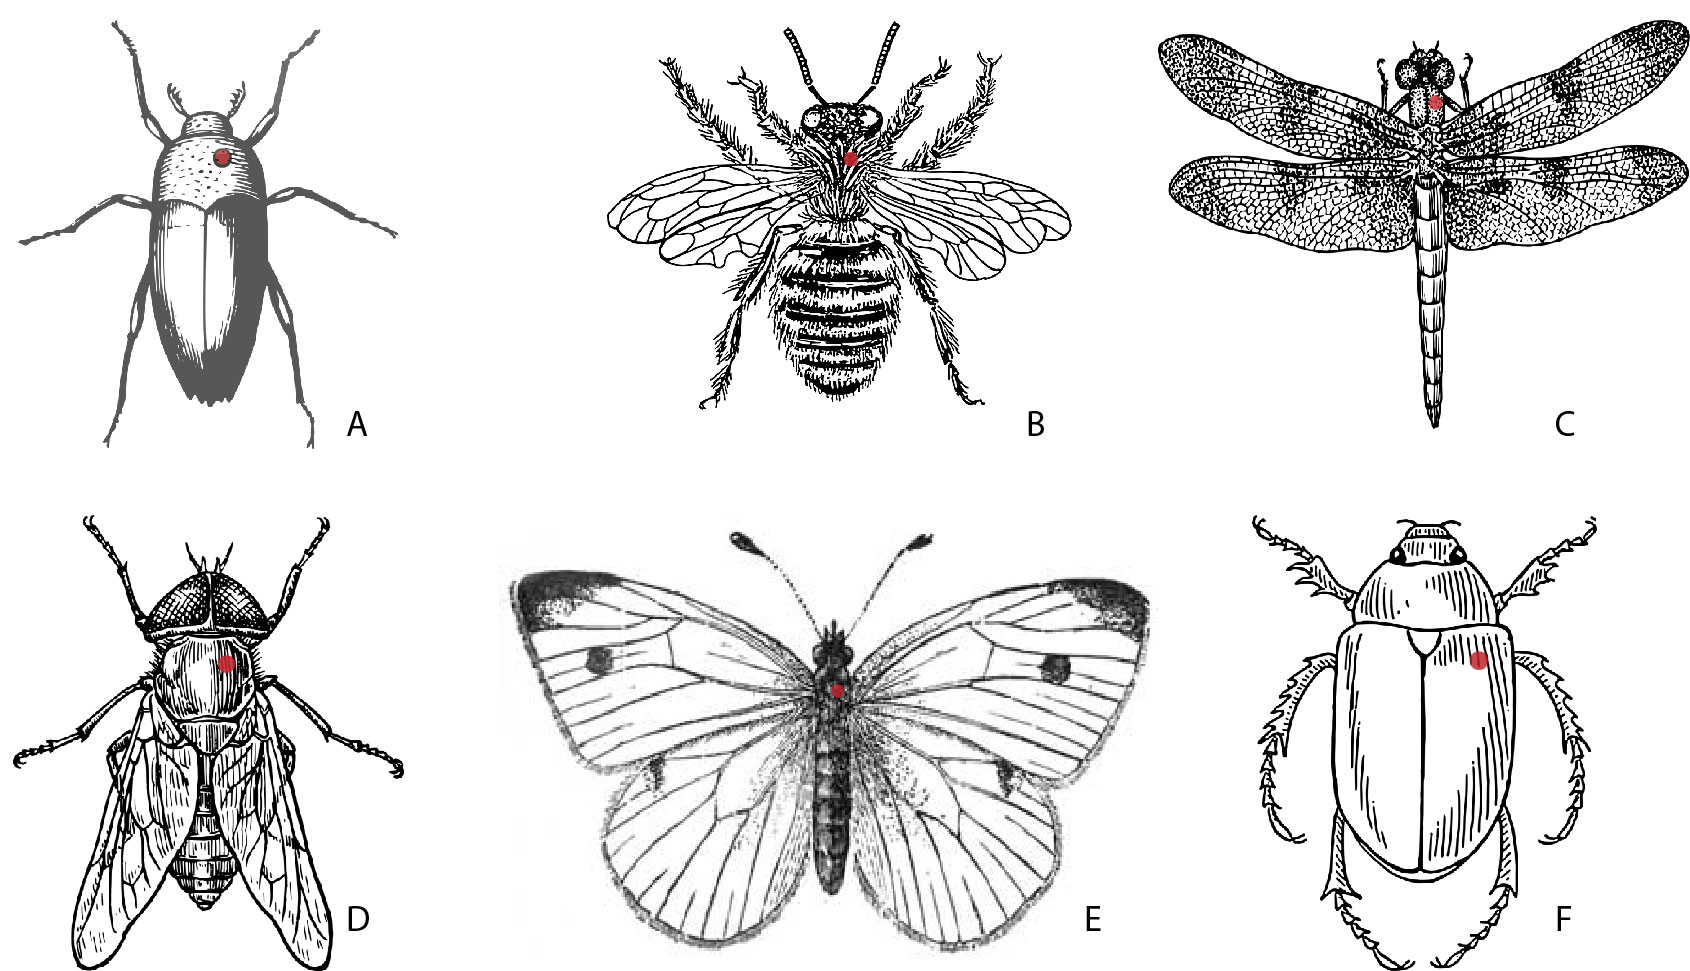 Figure 1-10: Diagram of ideal location to pin insects by type.